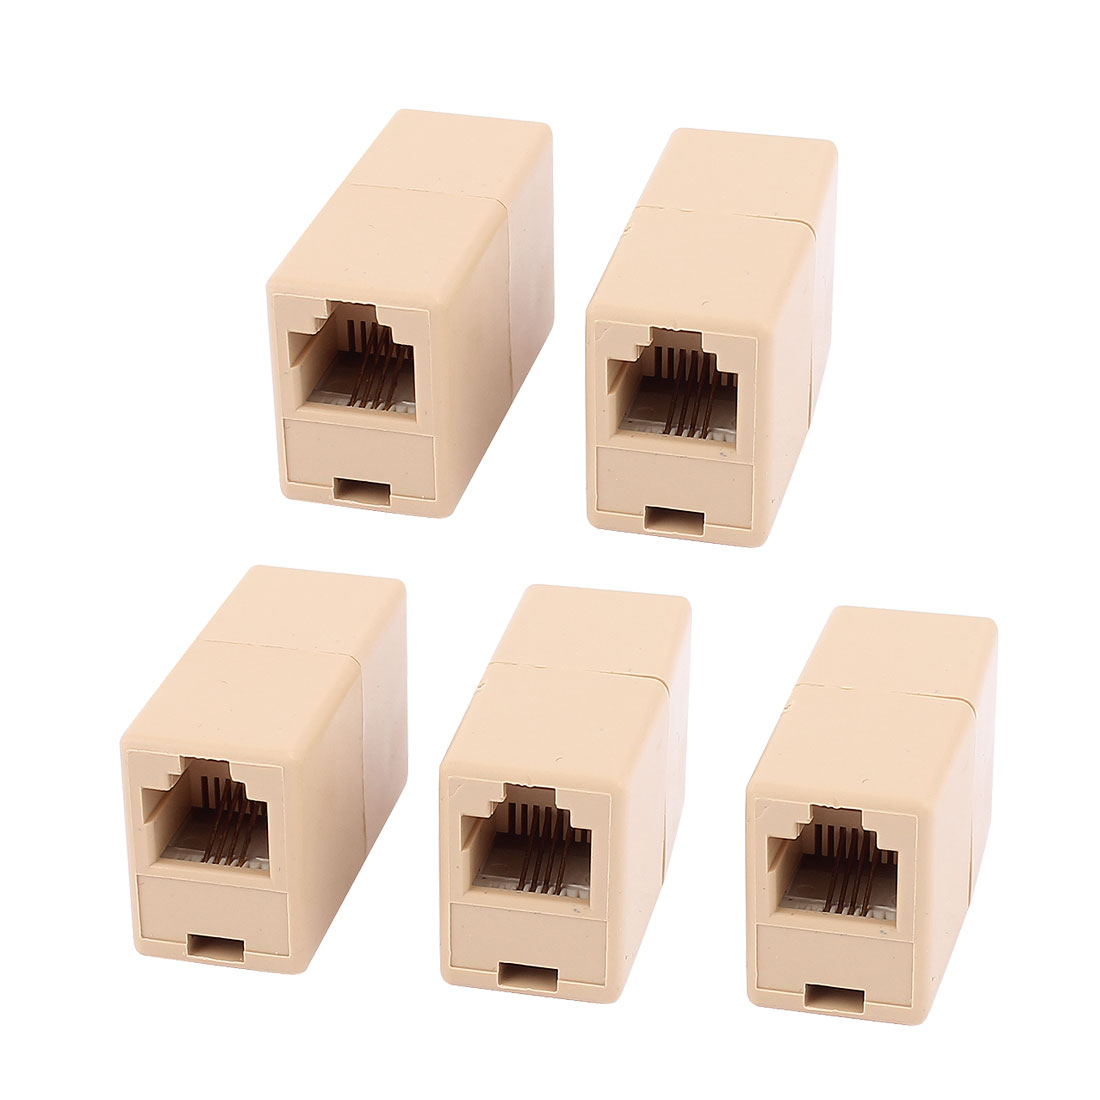 5Pcs Plastic RJ11 6P4C Female to Female Telephone Line Connector Coupler Beige